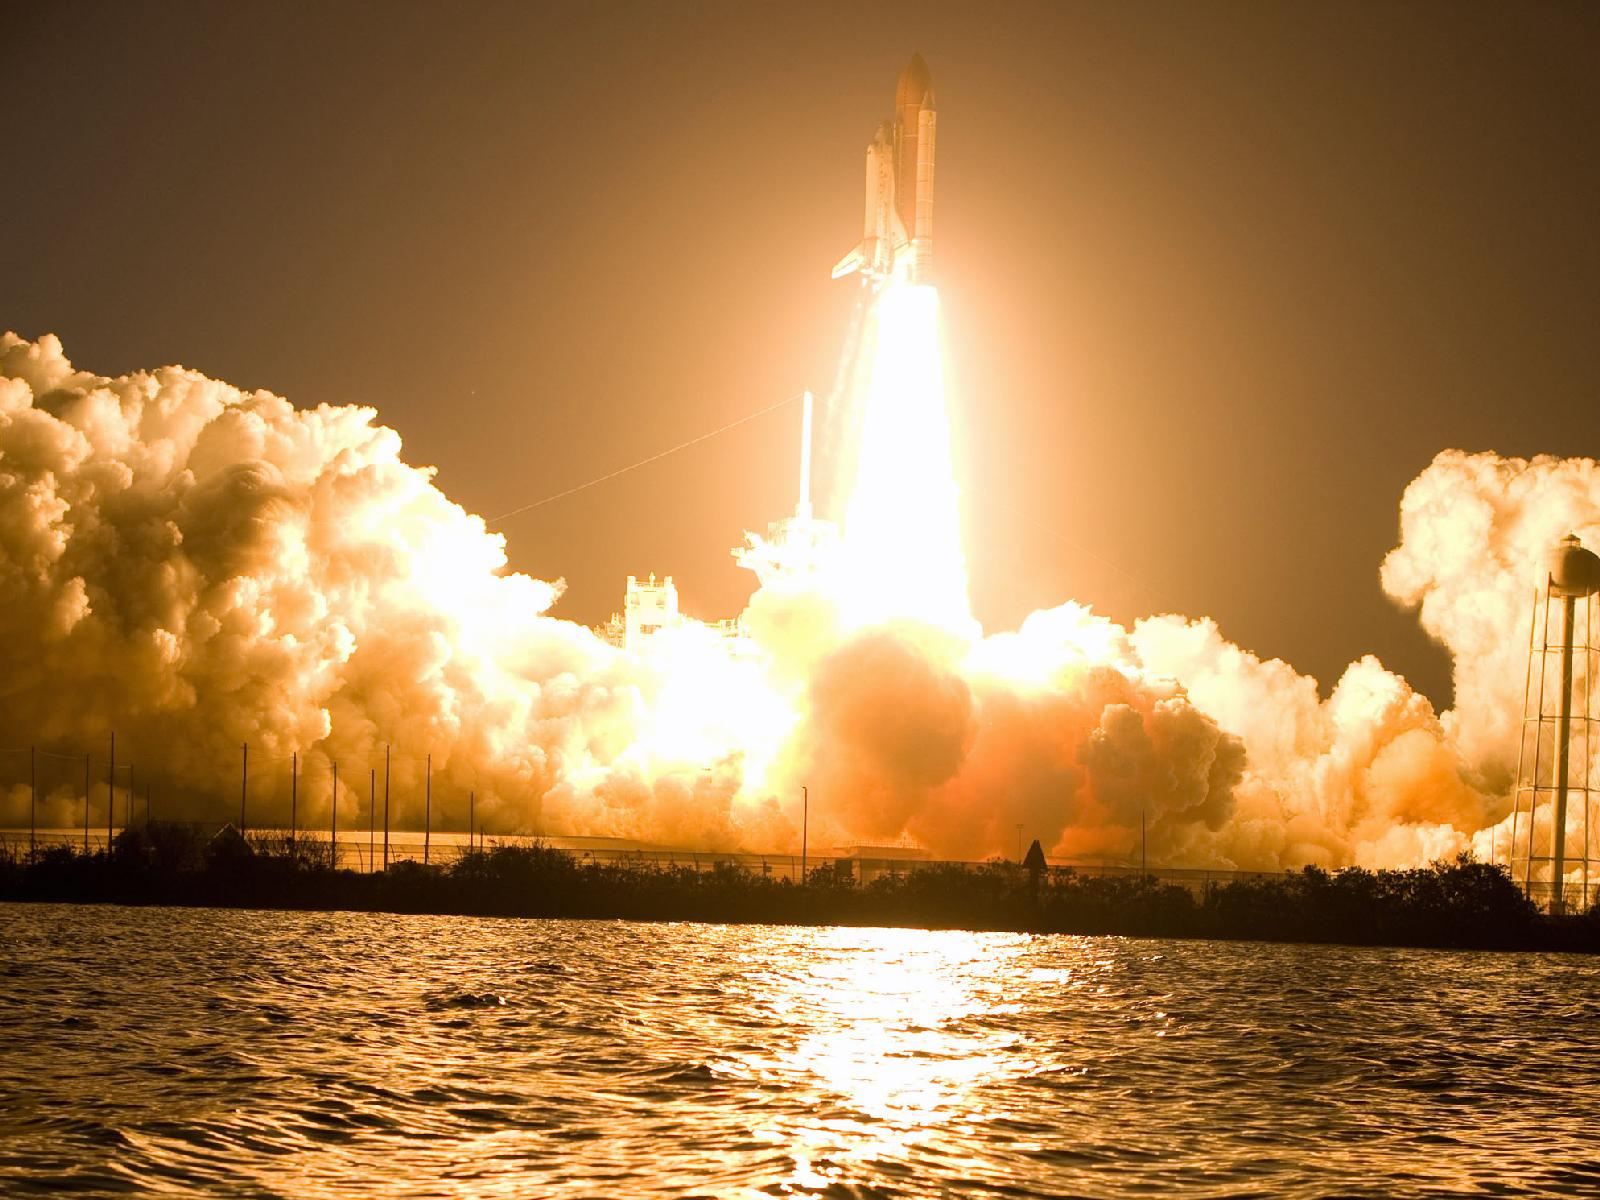 space shuttle discovery liftoff - photo #5